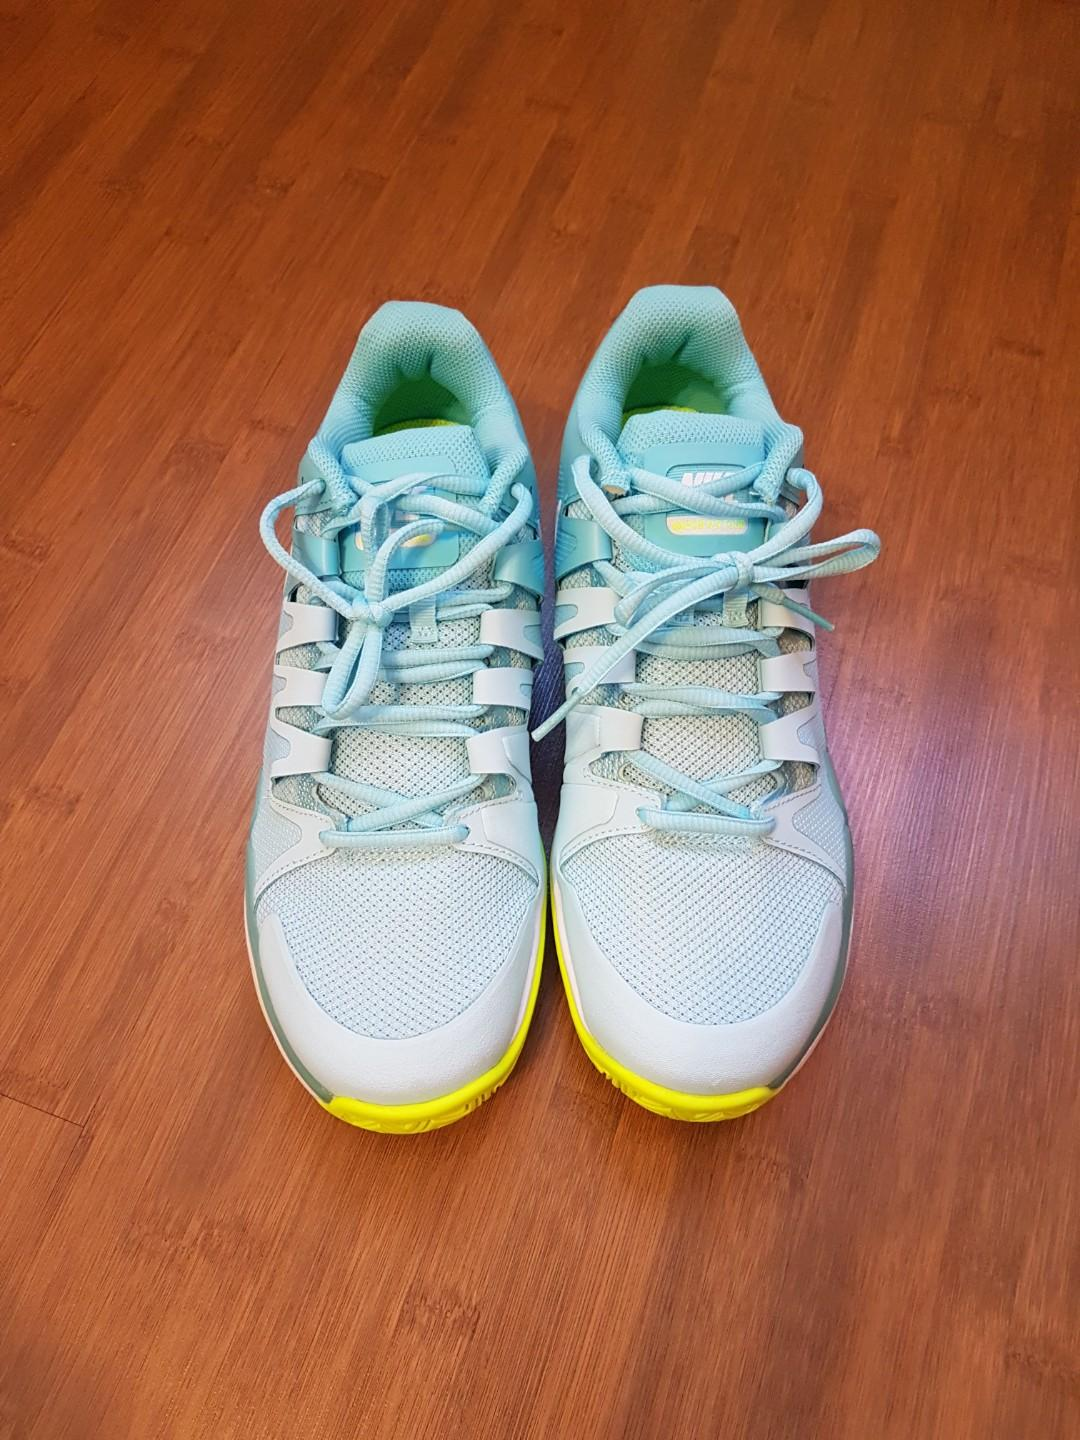 Gaseoso ataque Guarda la ropa  Nike Air Zoom Prestige Women's Tennis Shoes, Sports, Sports Apparel on  Carousell